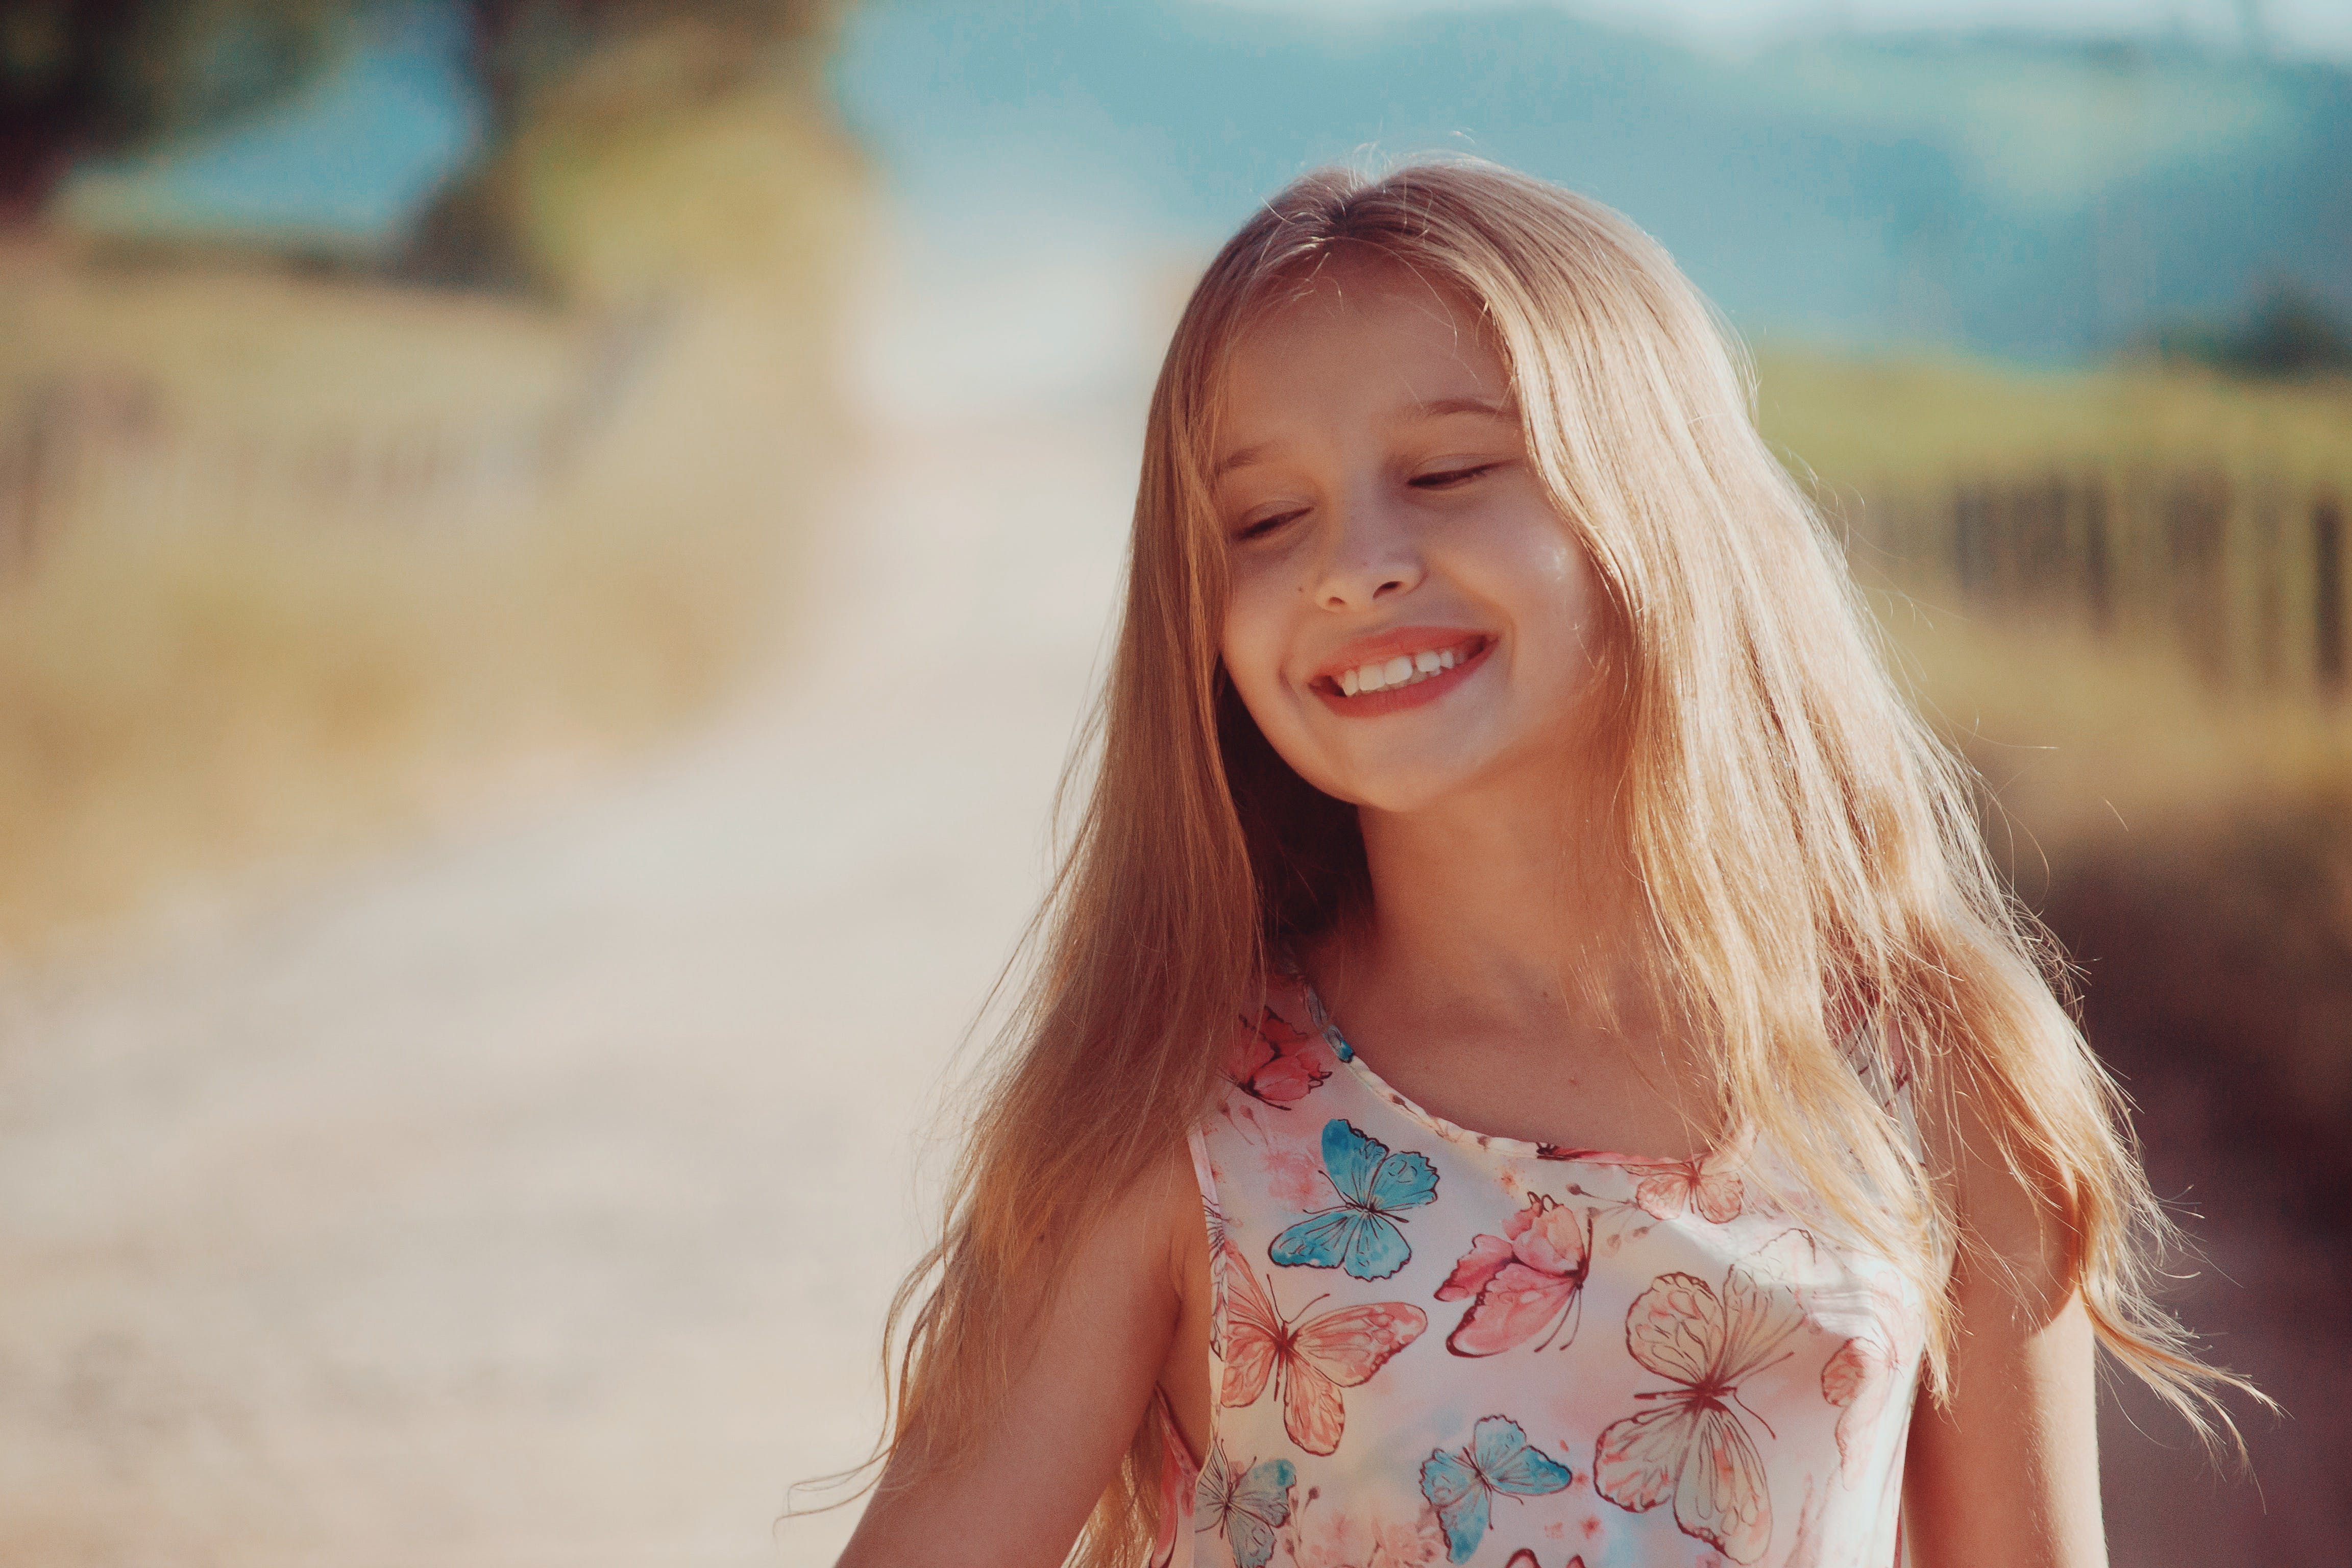 Girl Wearing Butterfly Printed Dress Smiling